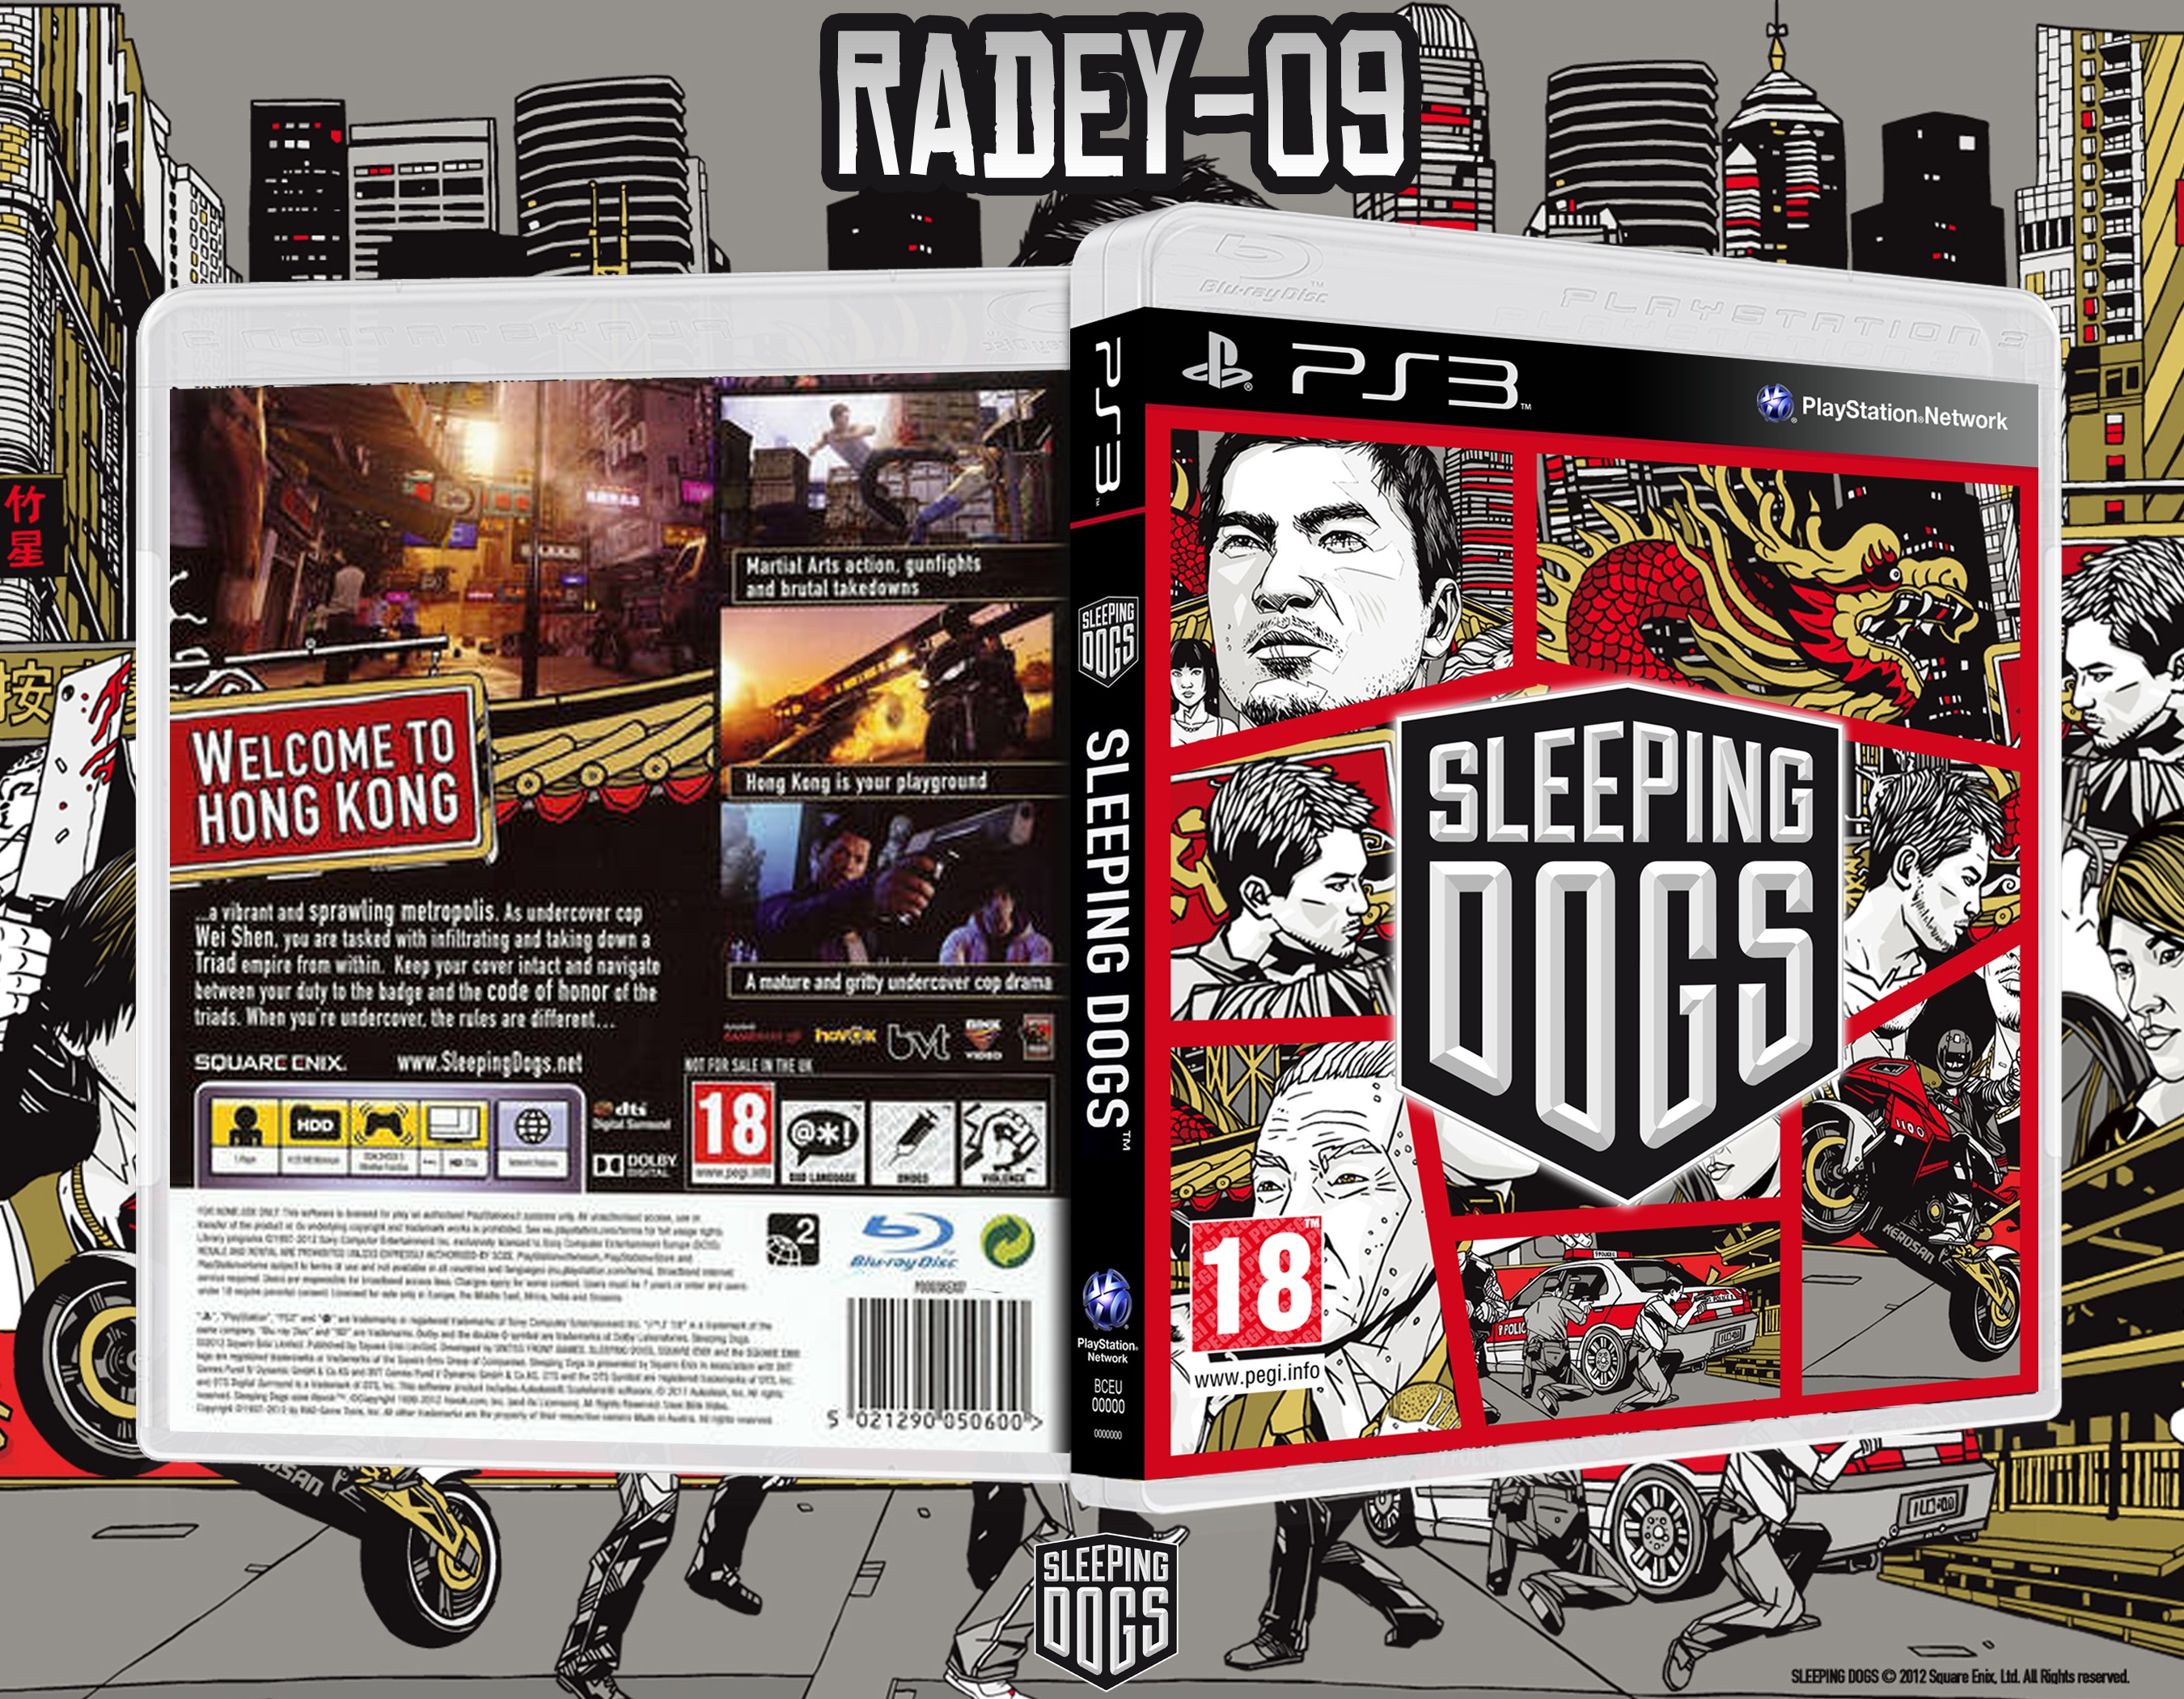 Sleeping Dogs PlayStation 3 Box Art Cover by radey-09